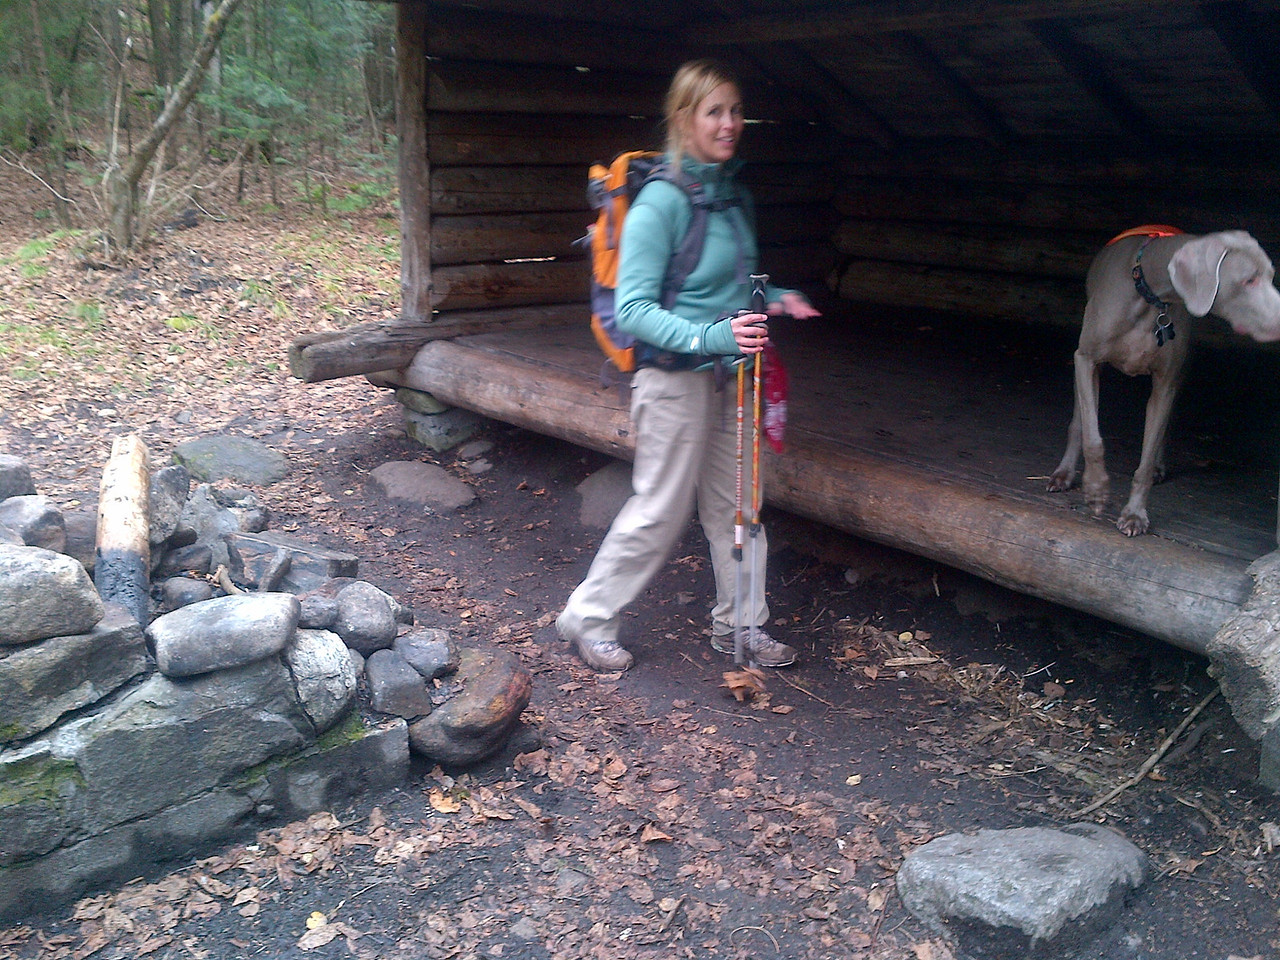 1 mile in and we reached the lean-to. This must not be in the high-peak region to have a fire pit. This was also on a nice trout stream so it would make for a good place to camp, however it is fairly close to the trailhead so it may get busy in the summer.